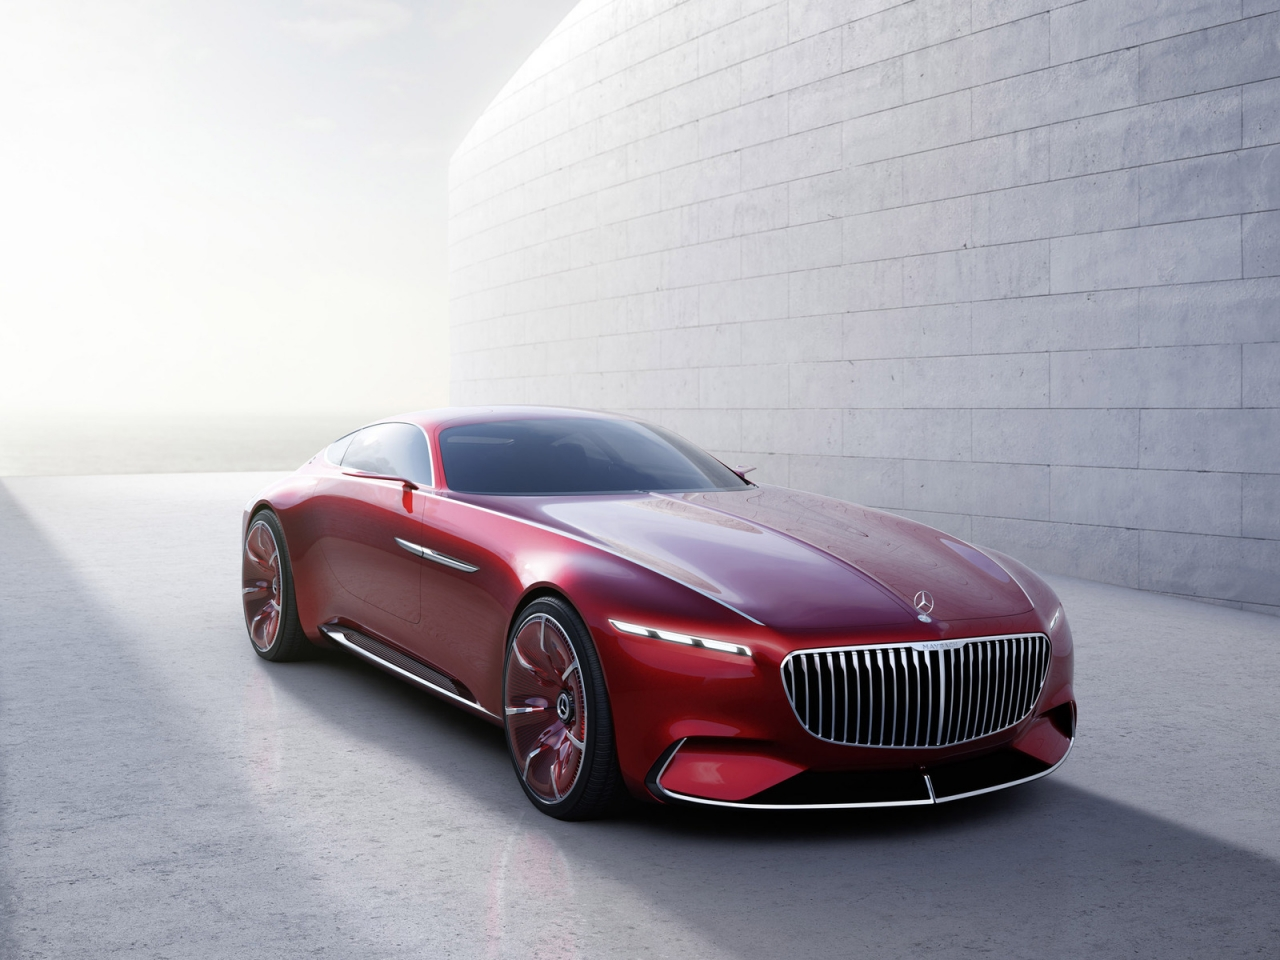 Maybach 6 2016 Concept Car for 1280 x 960 resolution